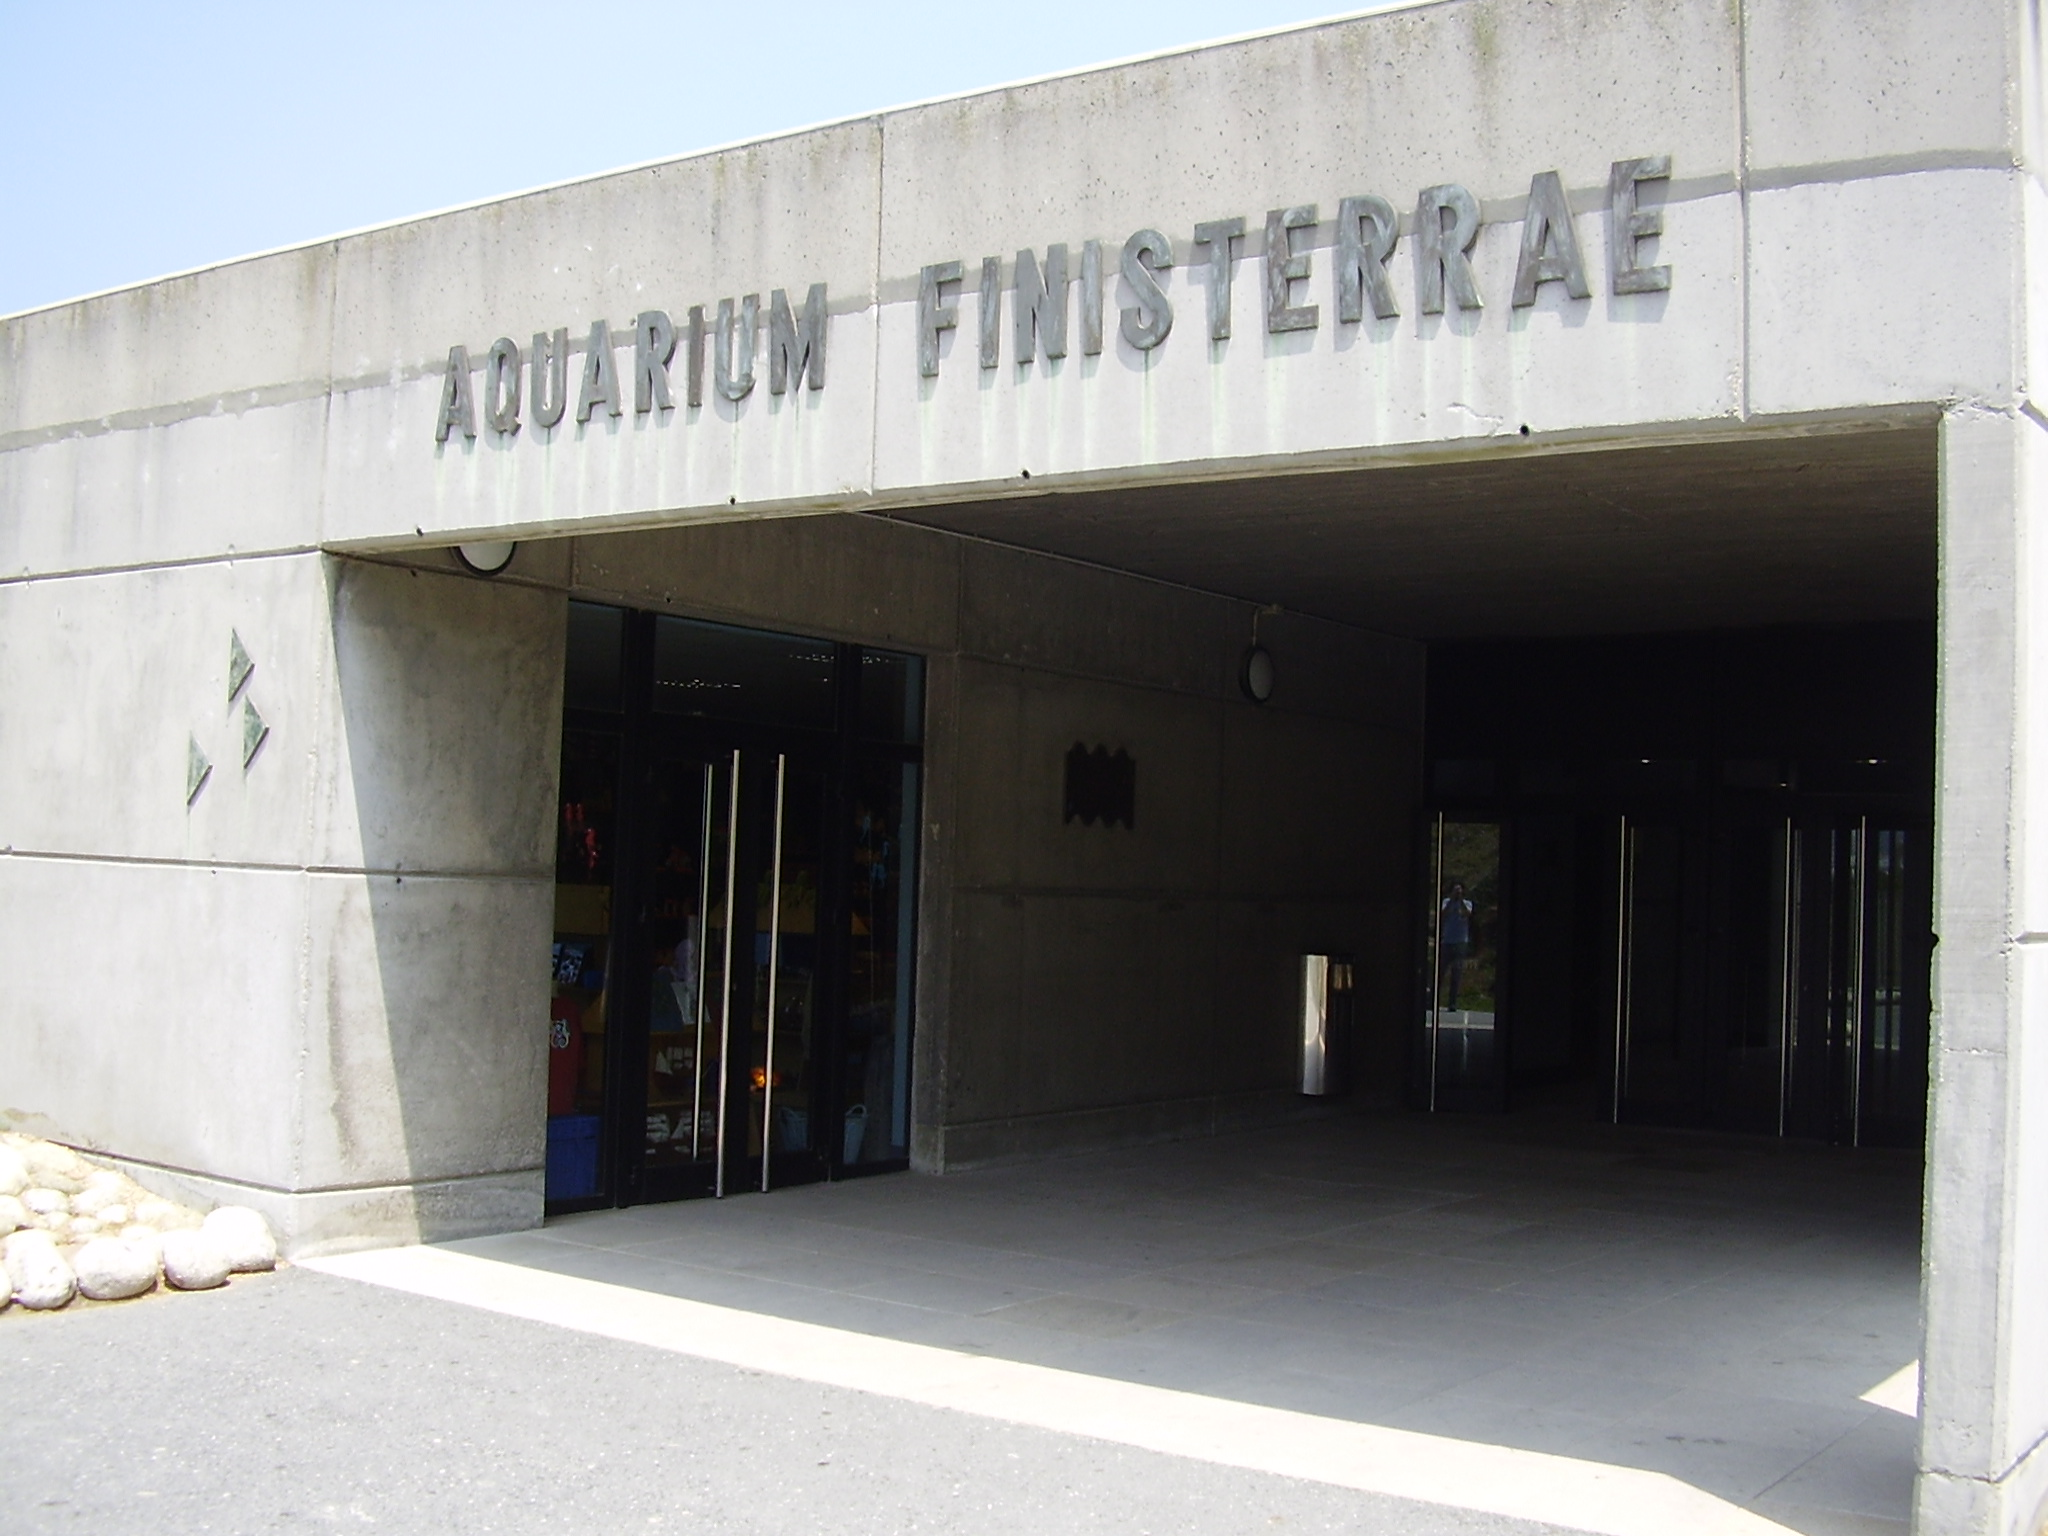 http://upload.wikimedia.org/wikipedia/commons/6/65/Entrada_del_Aquarium_Finisterrae.jpg